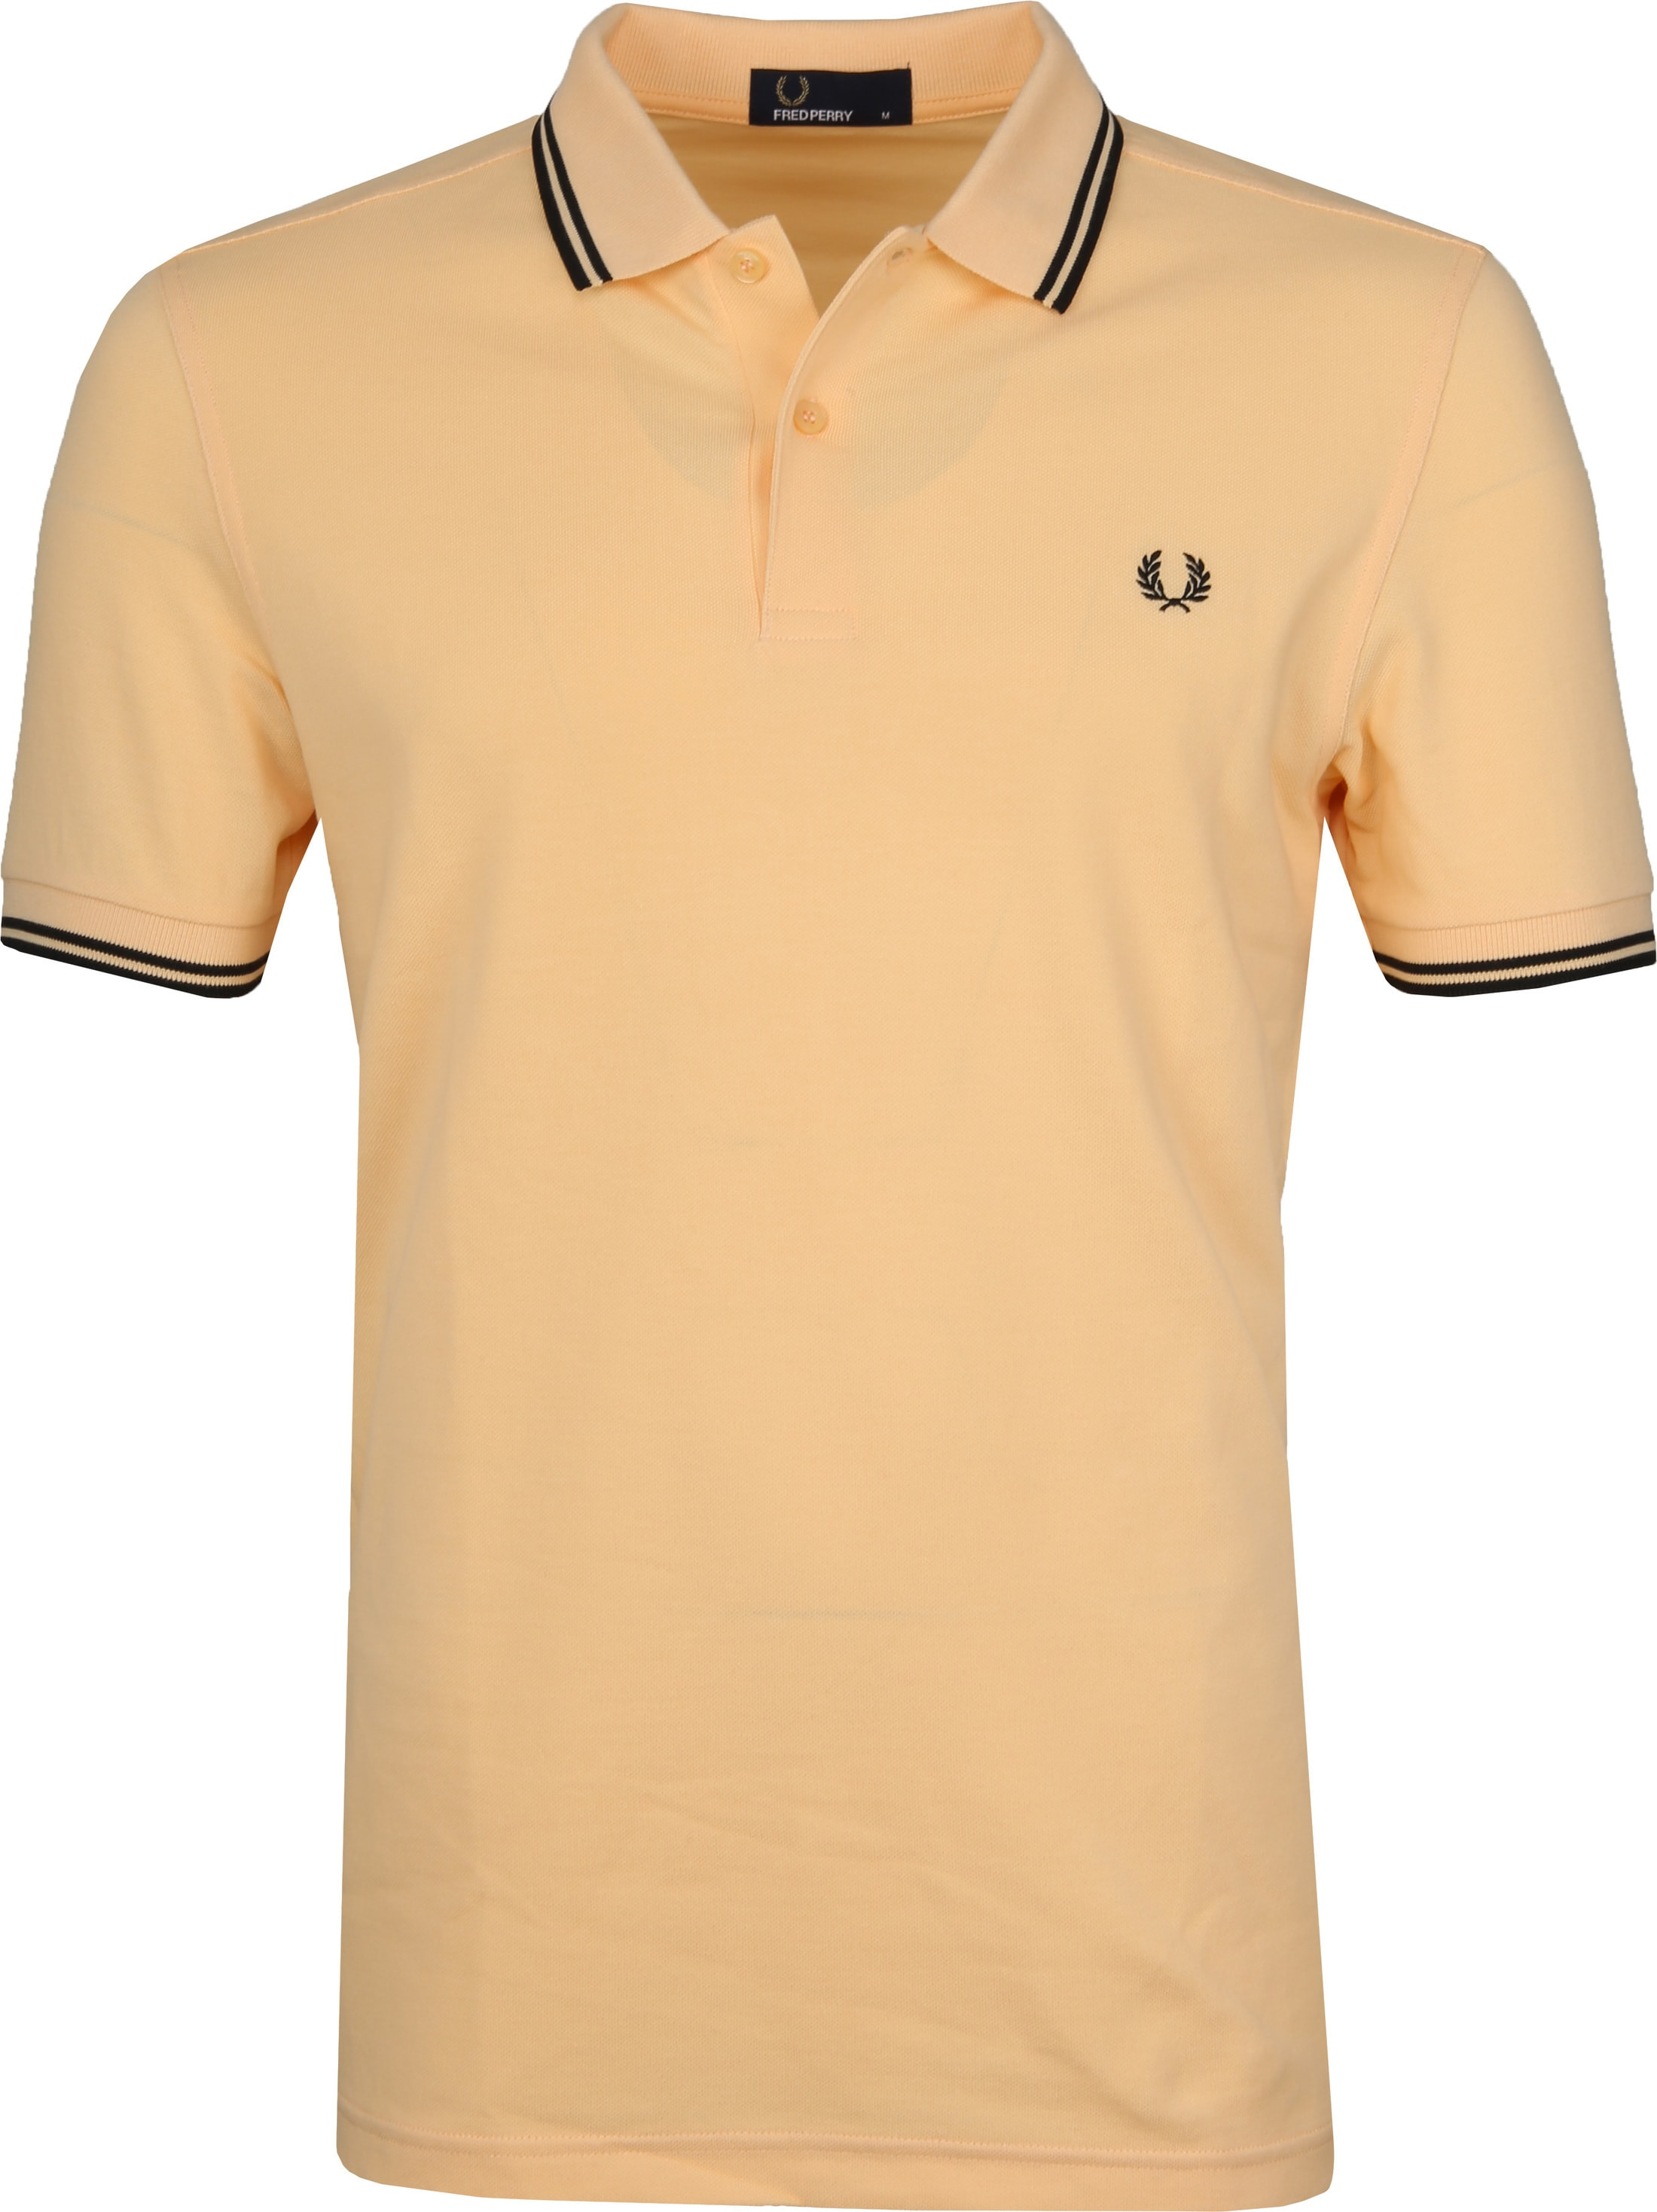 Fred Perry Poloshirt Gelb I07 foto 0